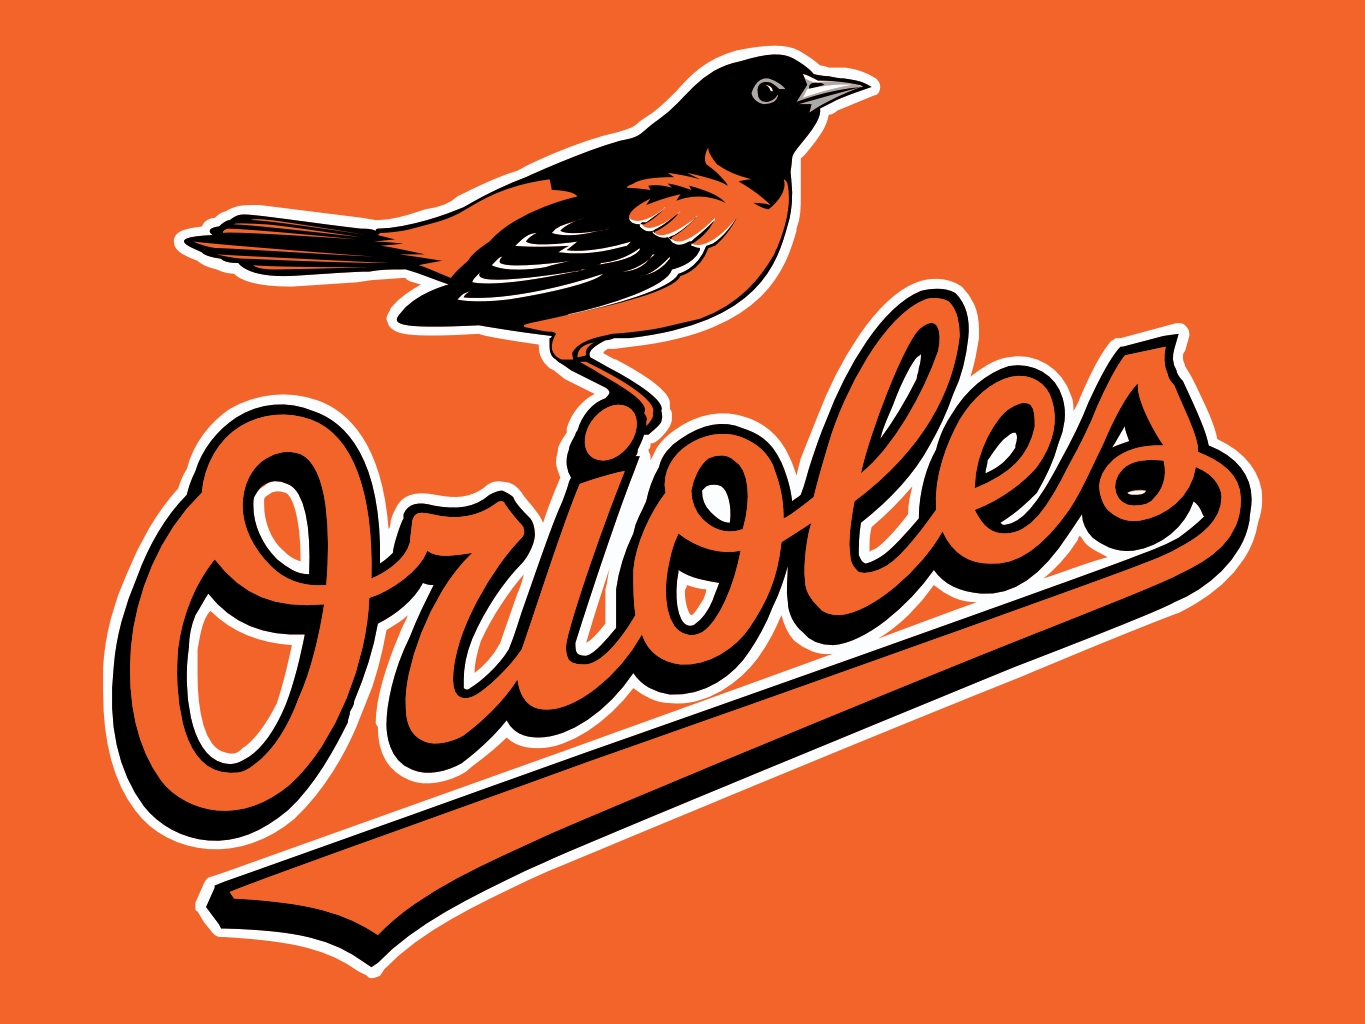 Image Baltimore Orioles Jpg Pro Sports Teams Wiki